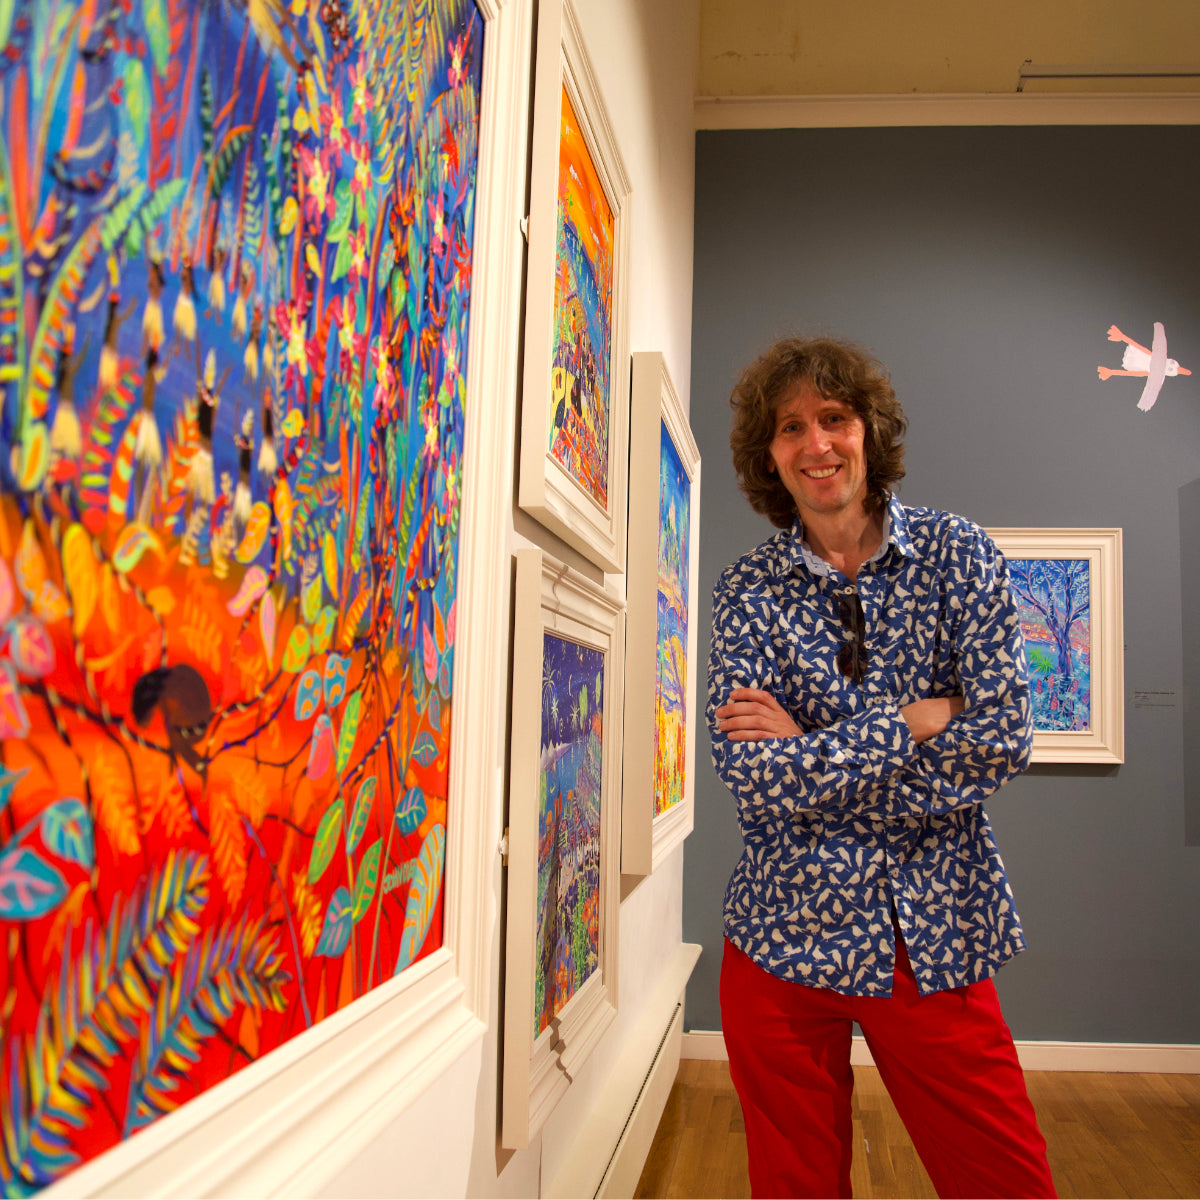 Artist John Dyer standing next to his painting of the Amazon rainforest spirits in Falmouth Art Gallery